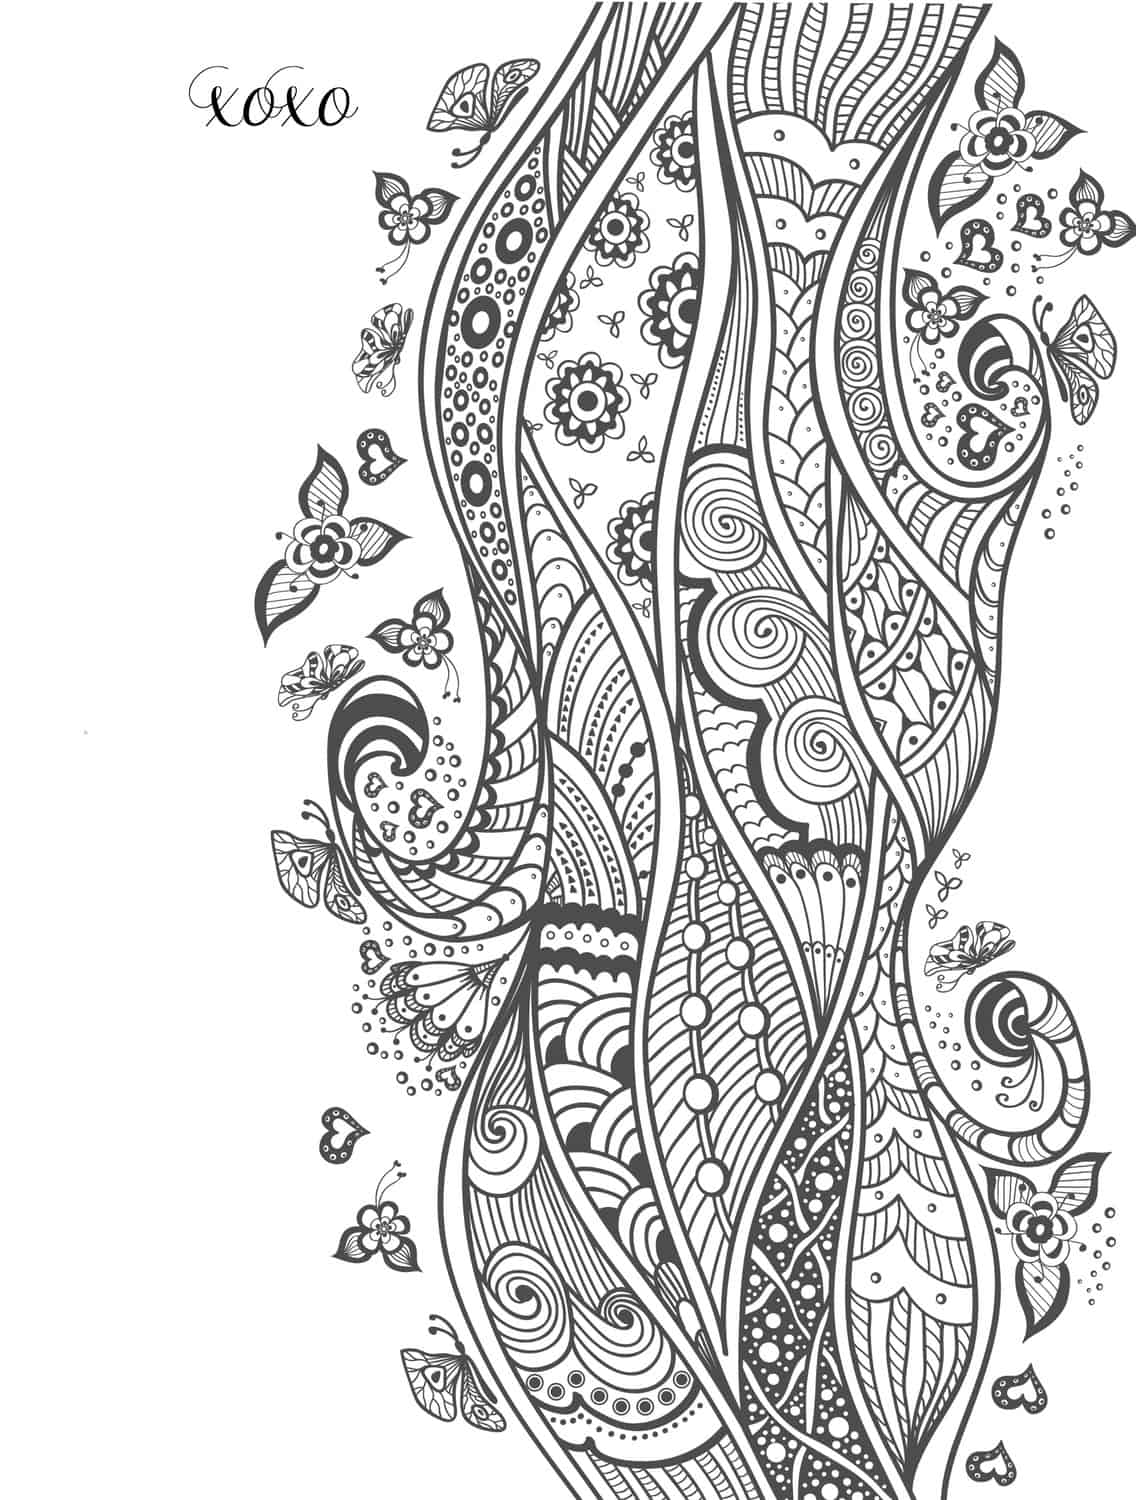 20 free printable valentines adult coloring pages - Free Art Coloring Pages